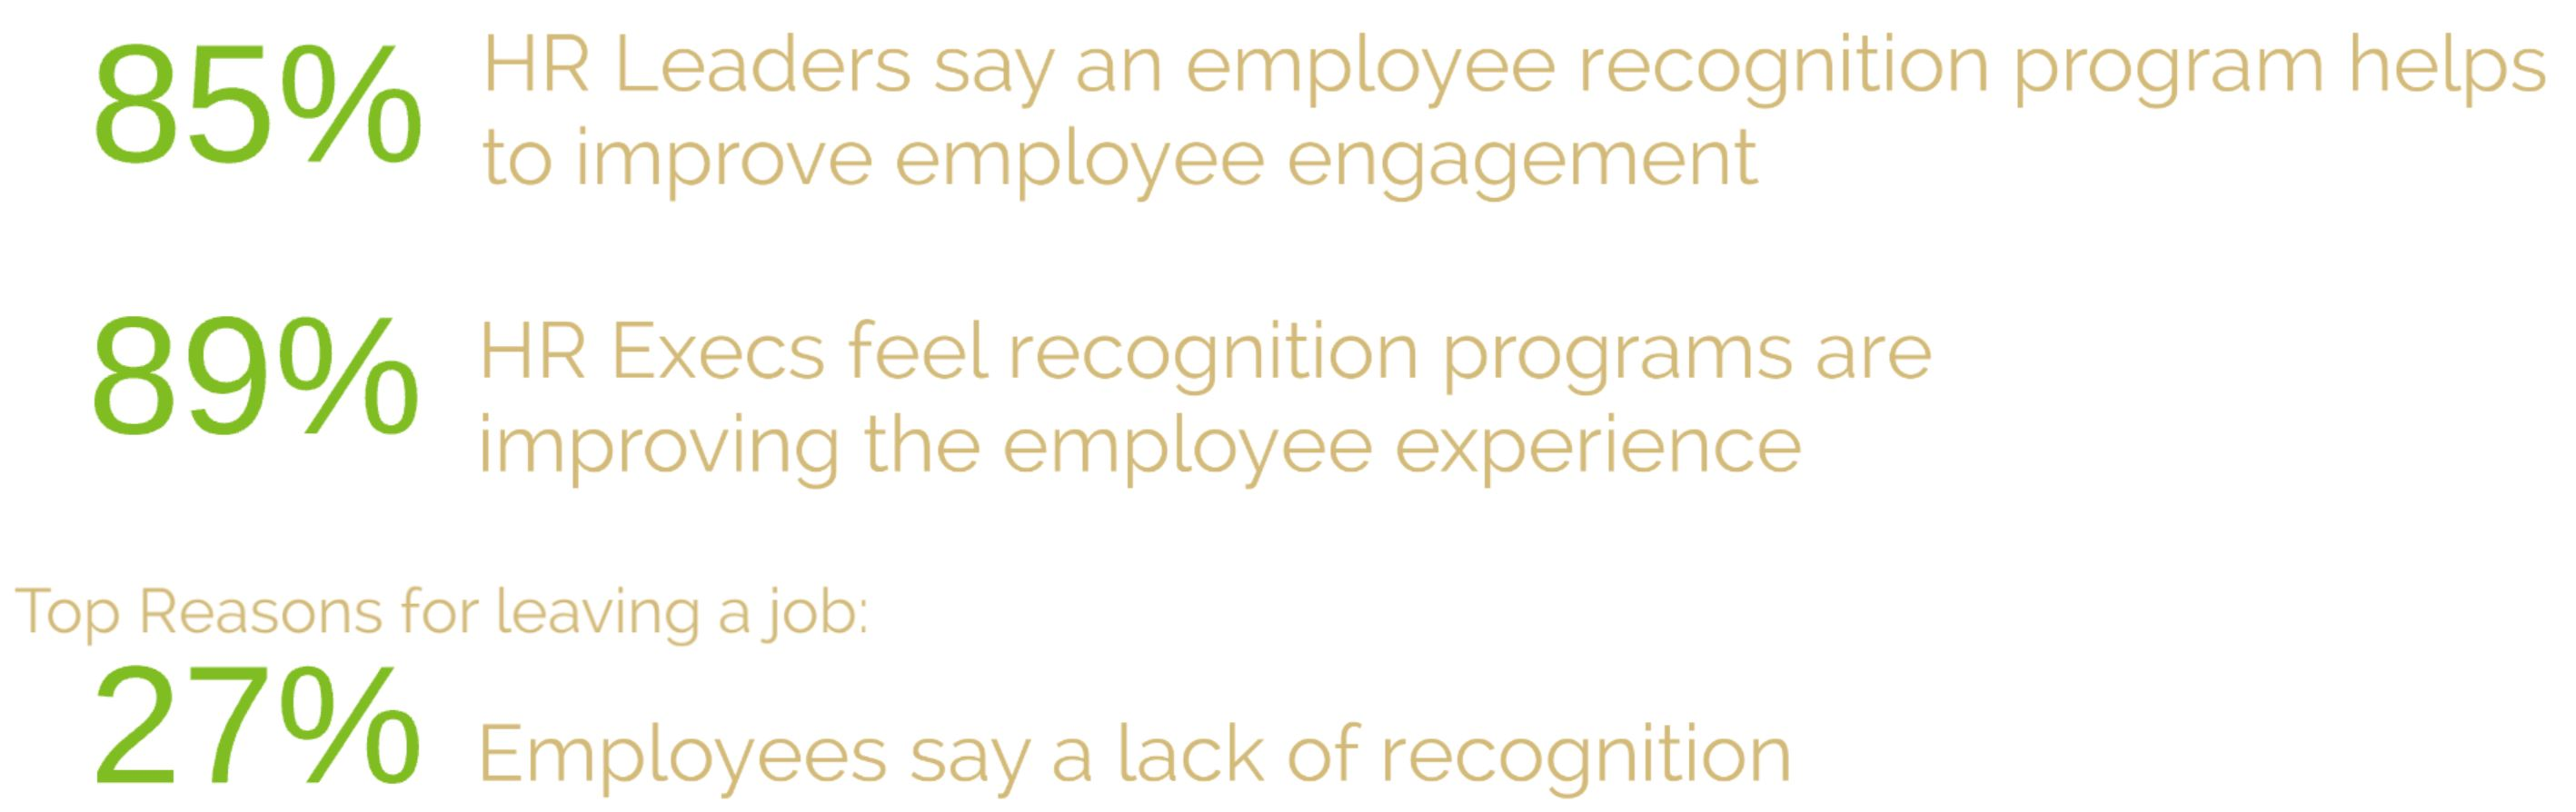 Statistics on Employee Engagement for Employers Looking to Grow Productivity and Profitability through Engagement